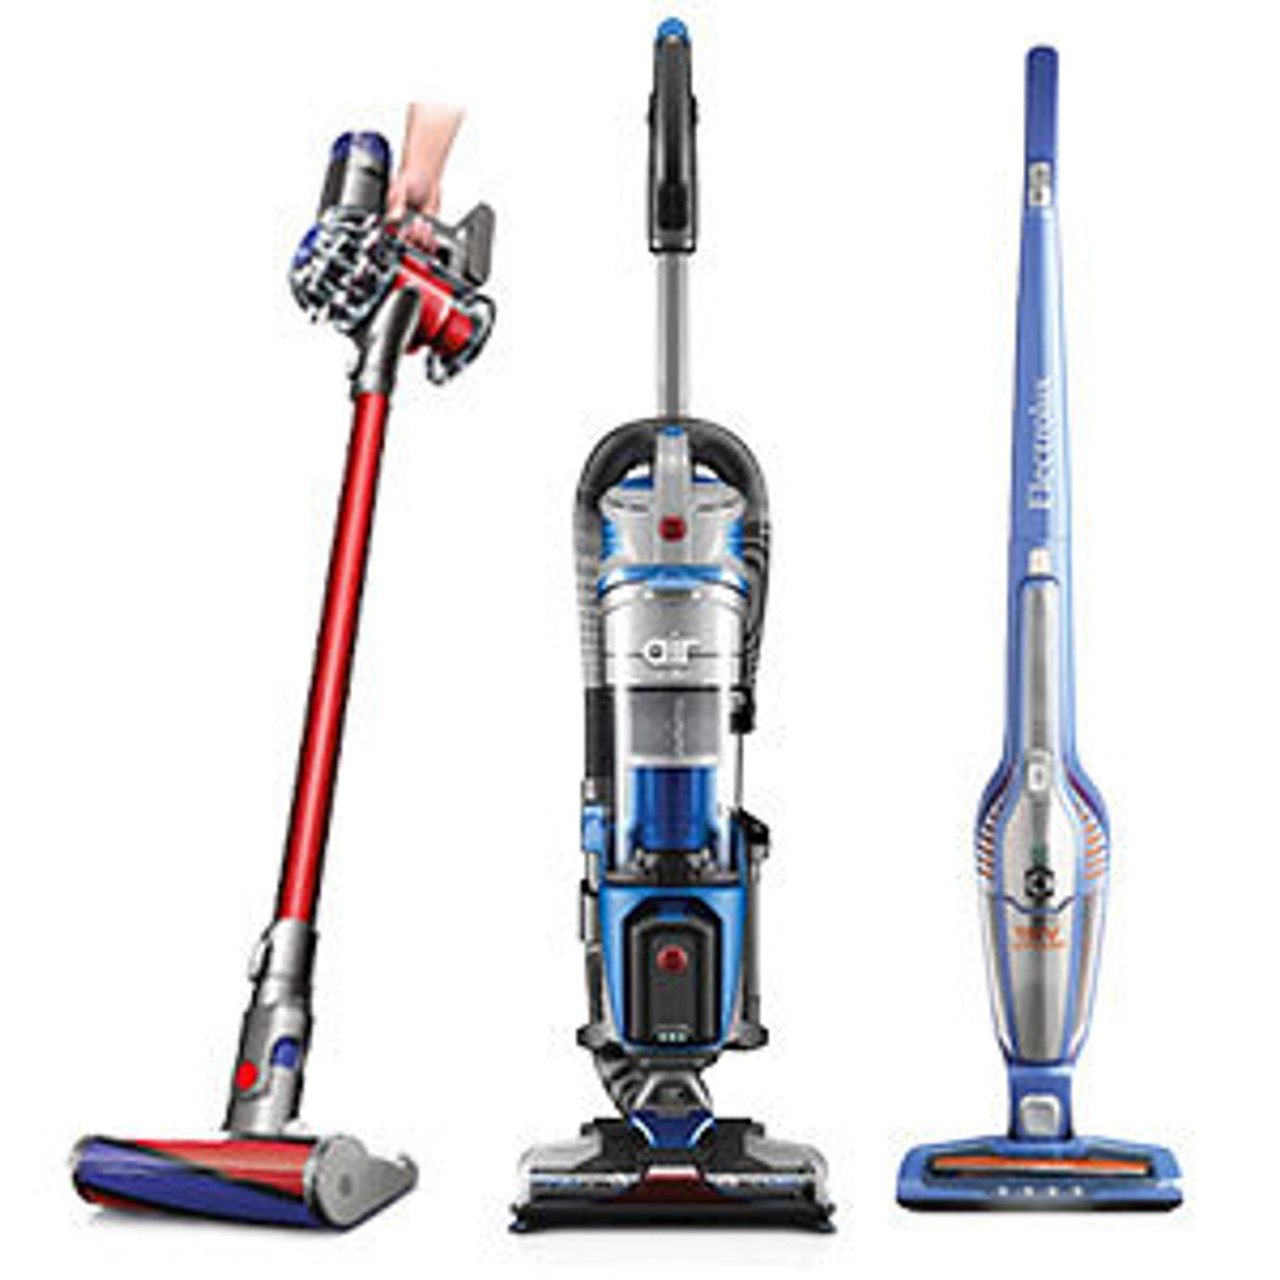 Vacuum Cleaners Cordless Vacuums Page 1 Bank S